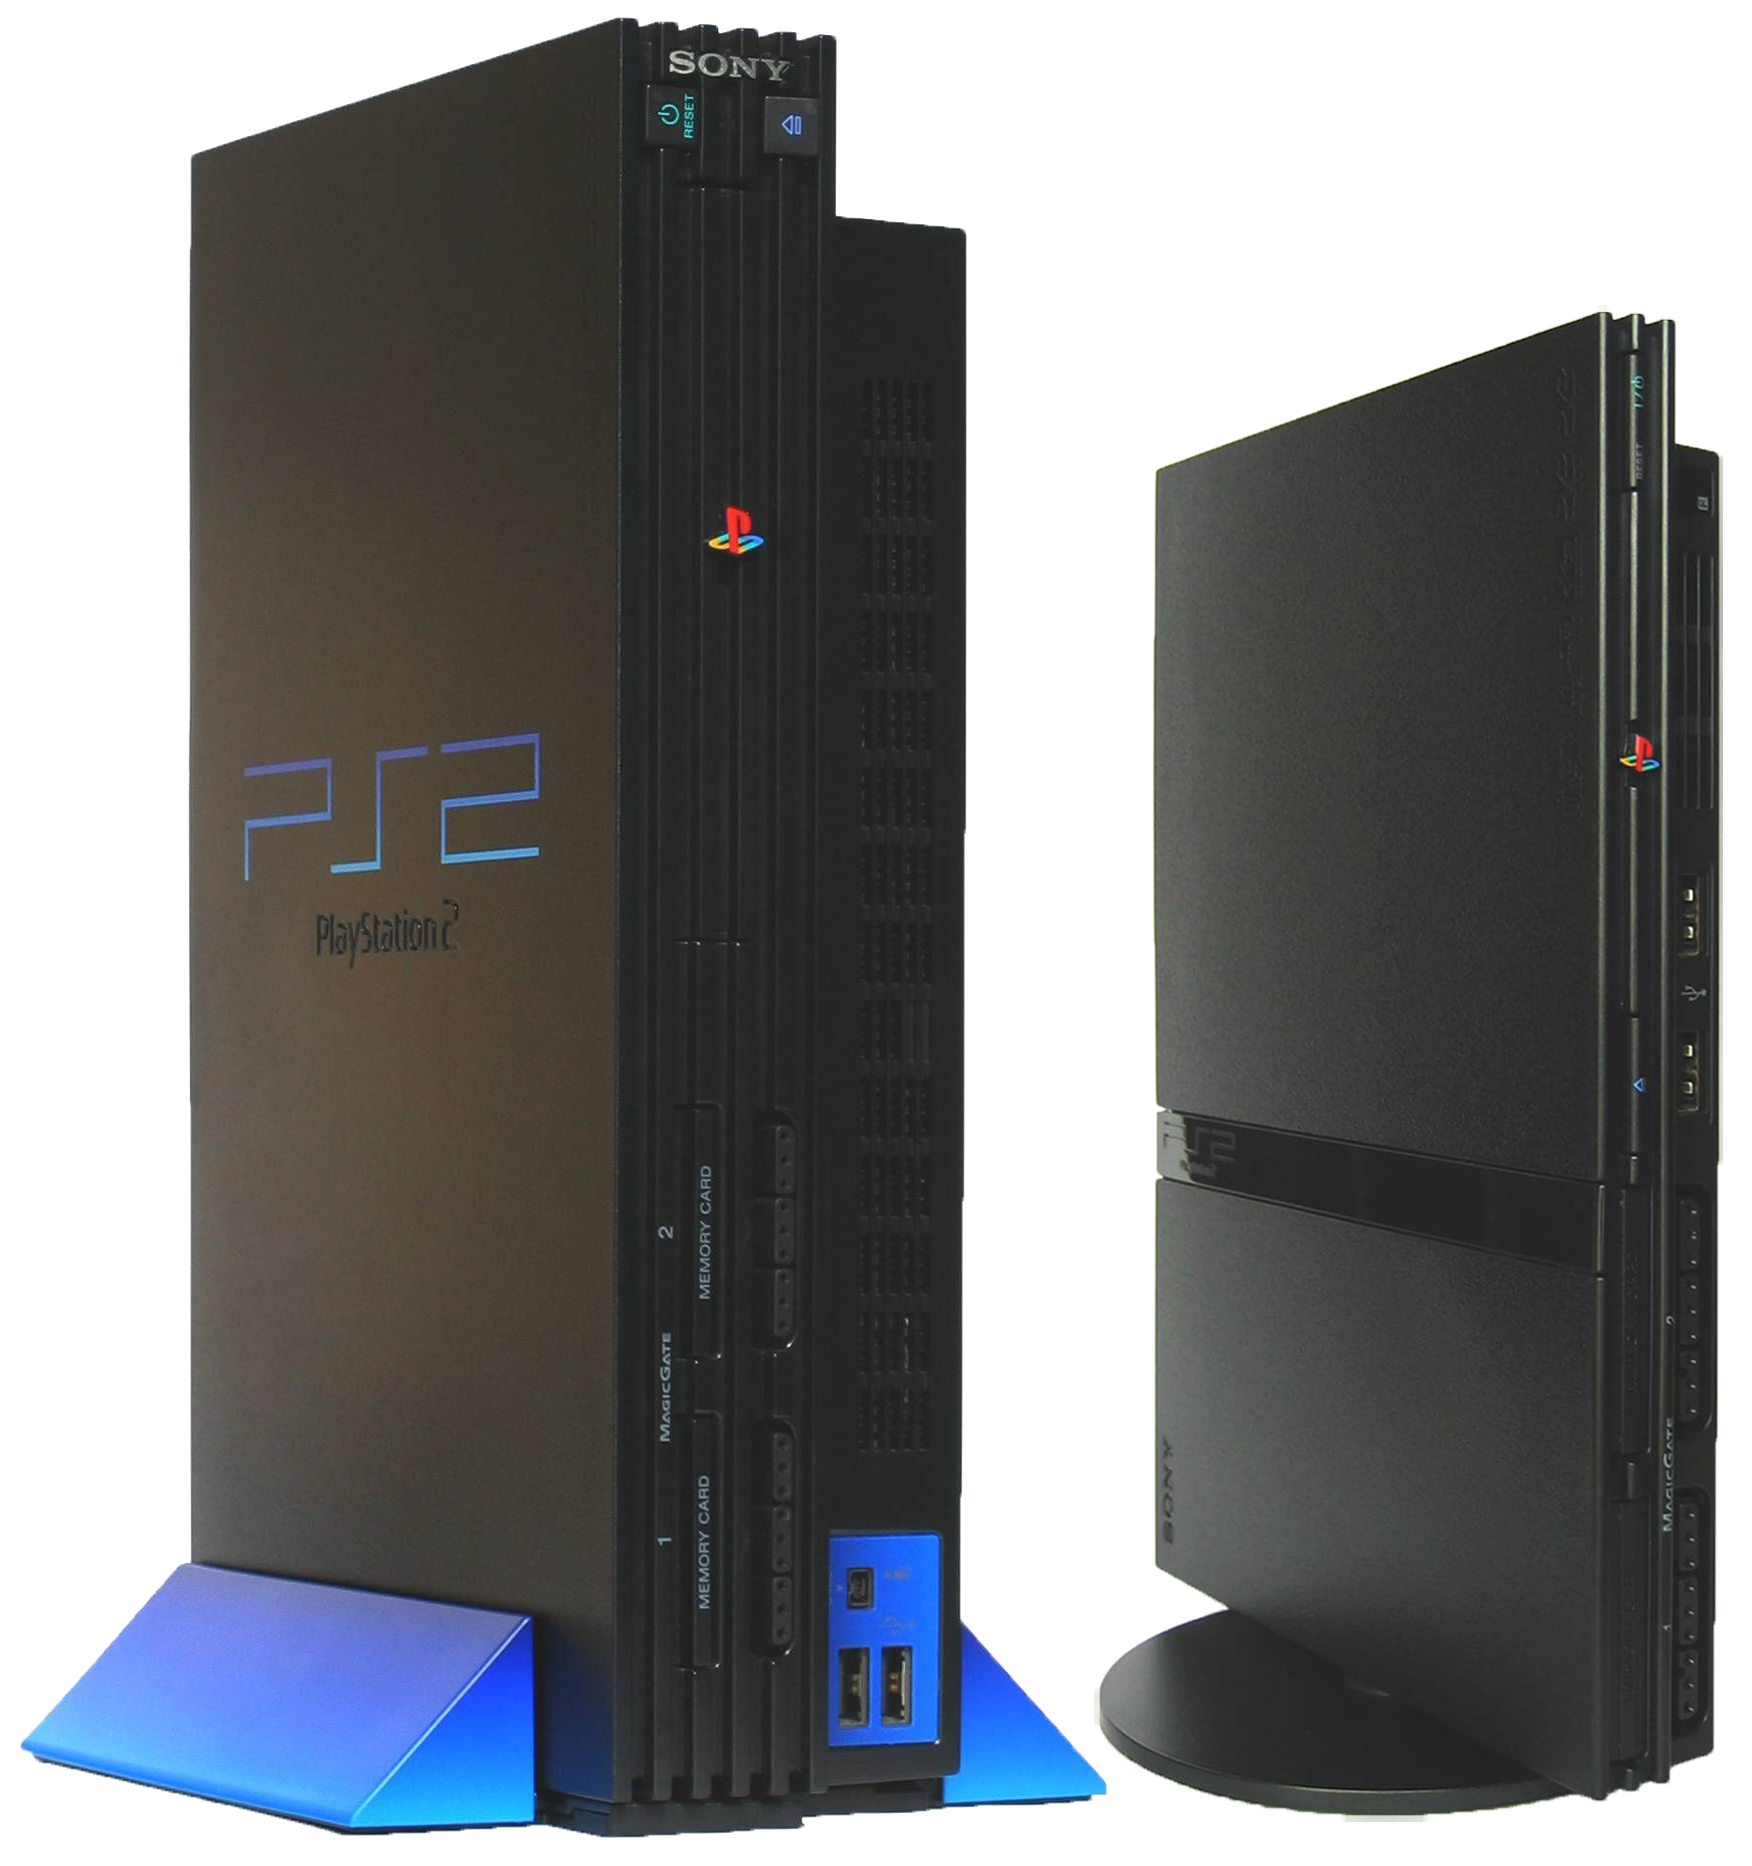 [Image: PlayStation_2_comparison.png]